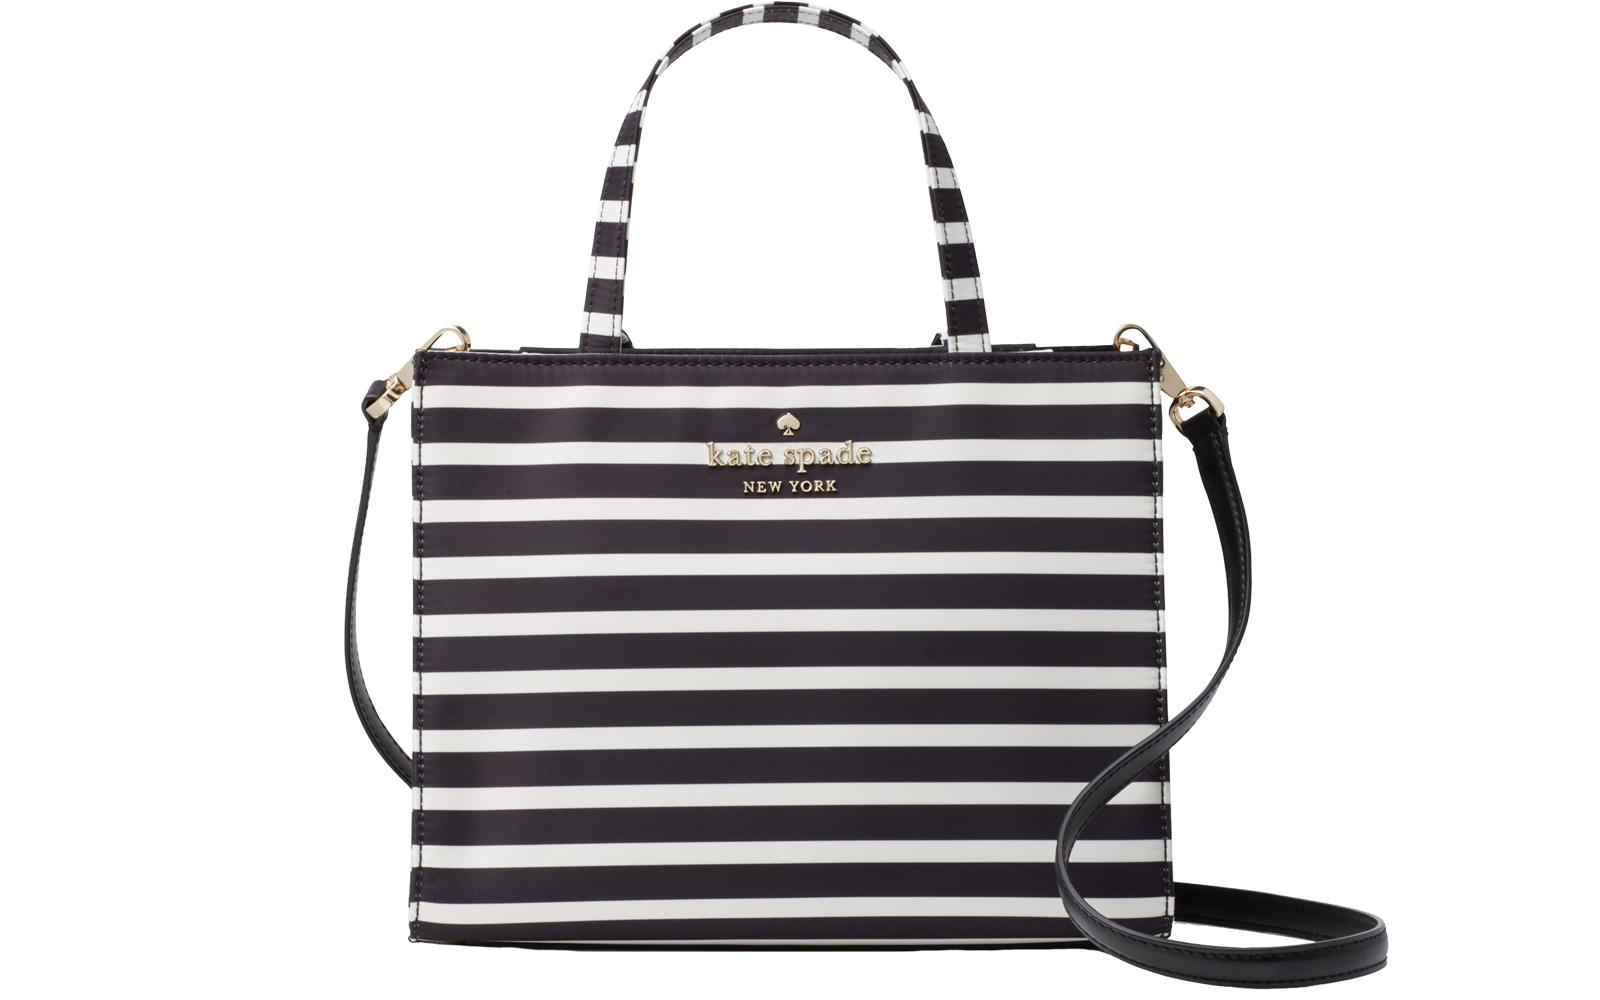 Kate Spade S Most Iconic 90s Bag Is